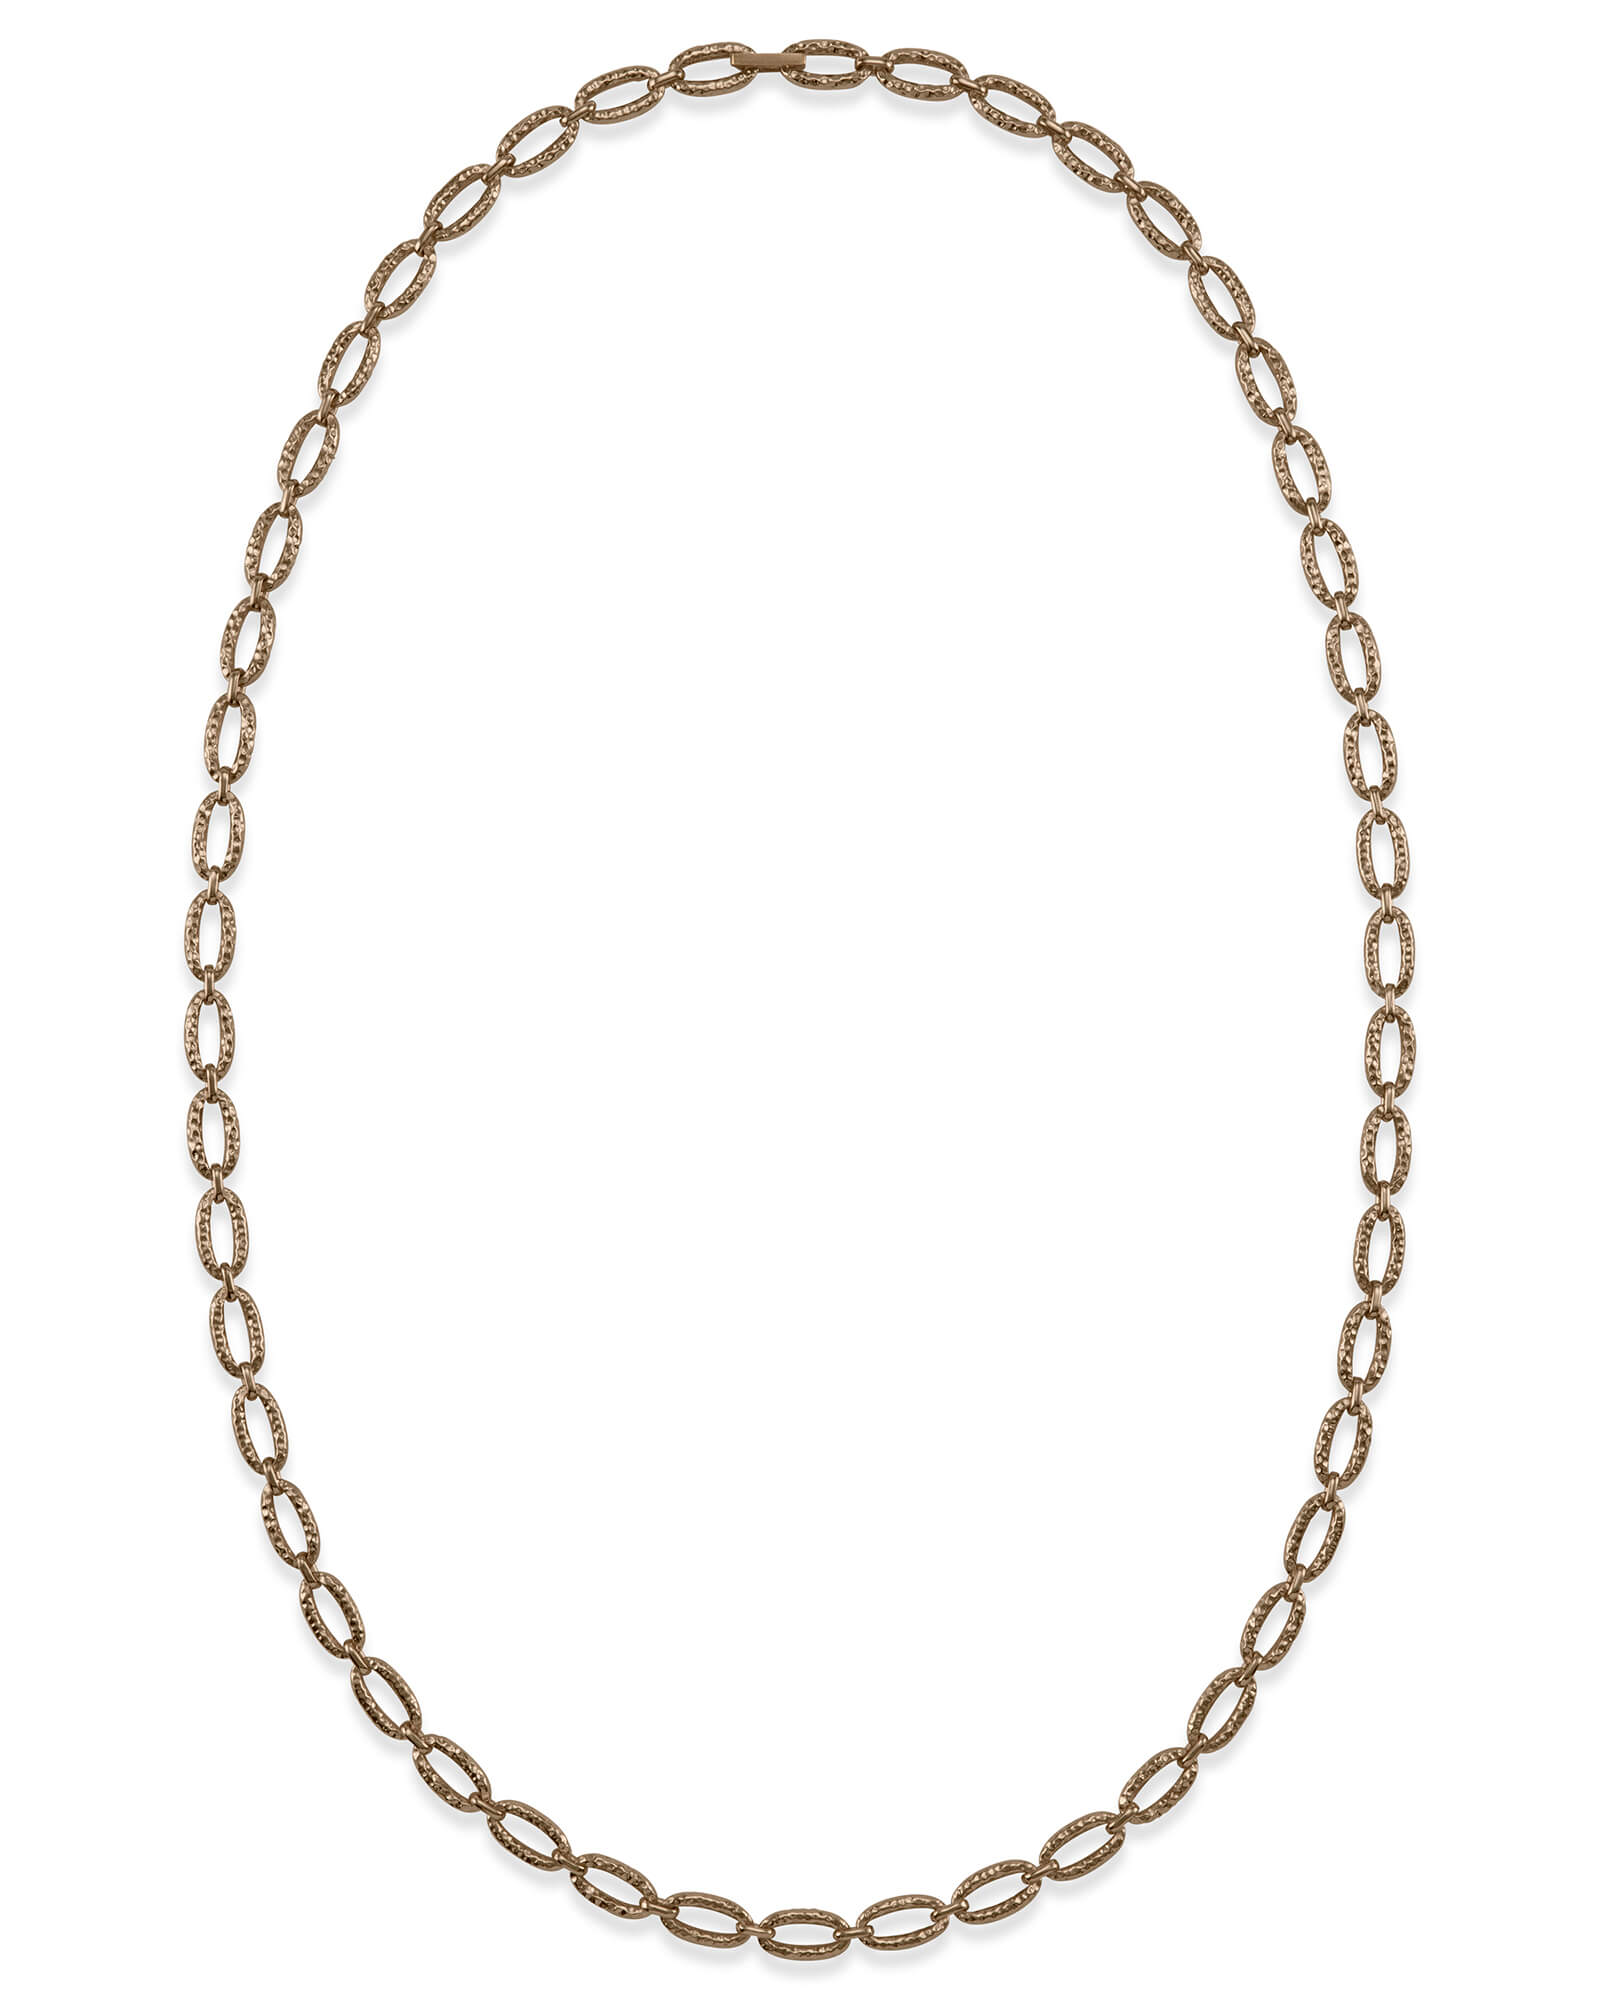 "32"" Chain Link Necklace in Vintage Gold"